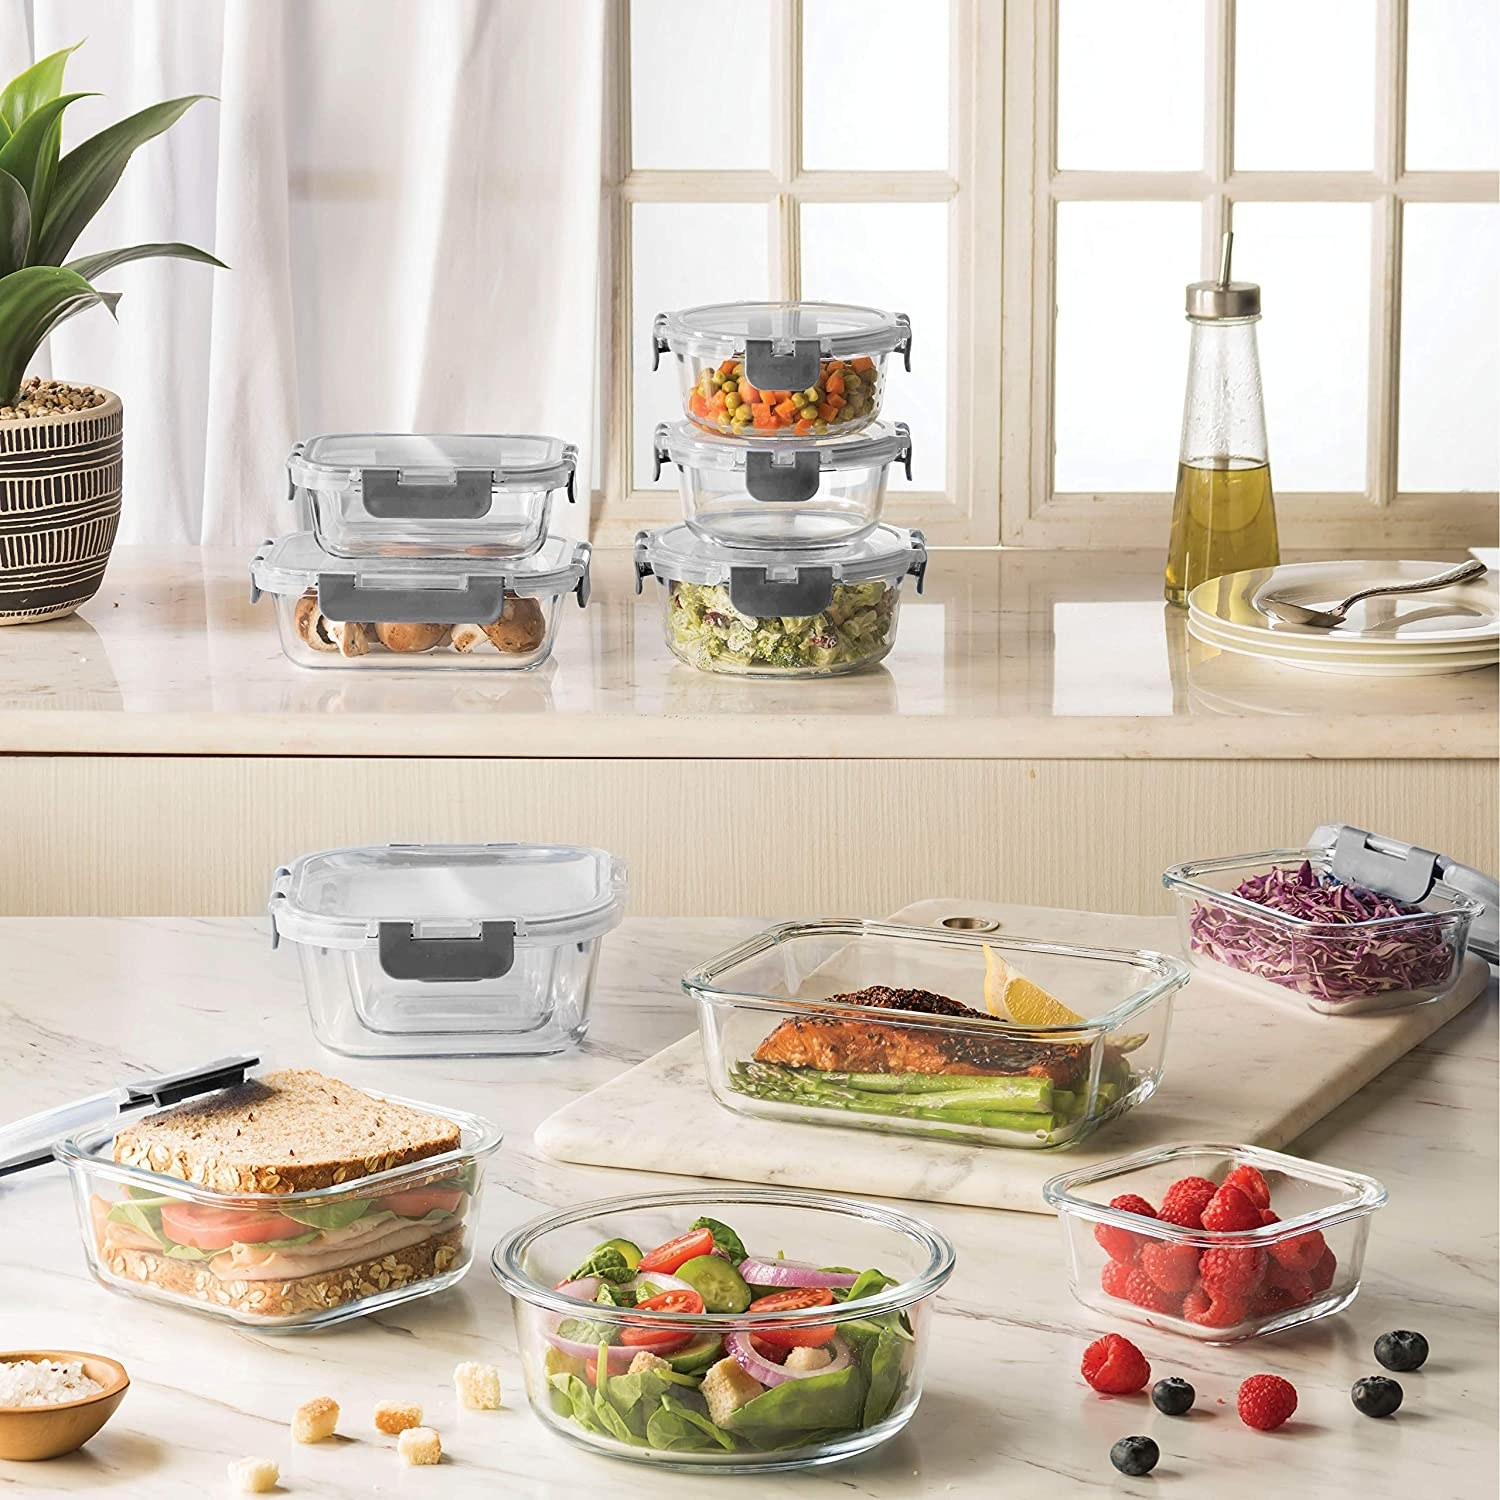 Eleven glass food containers of different sizes on a kitchen counter Each is filled with different food items